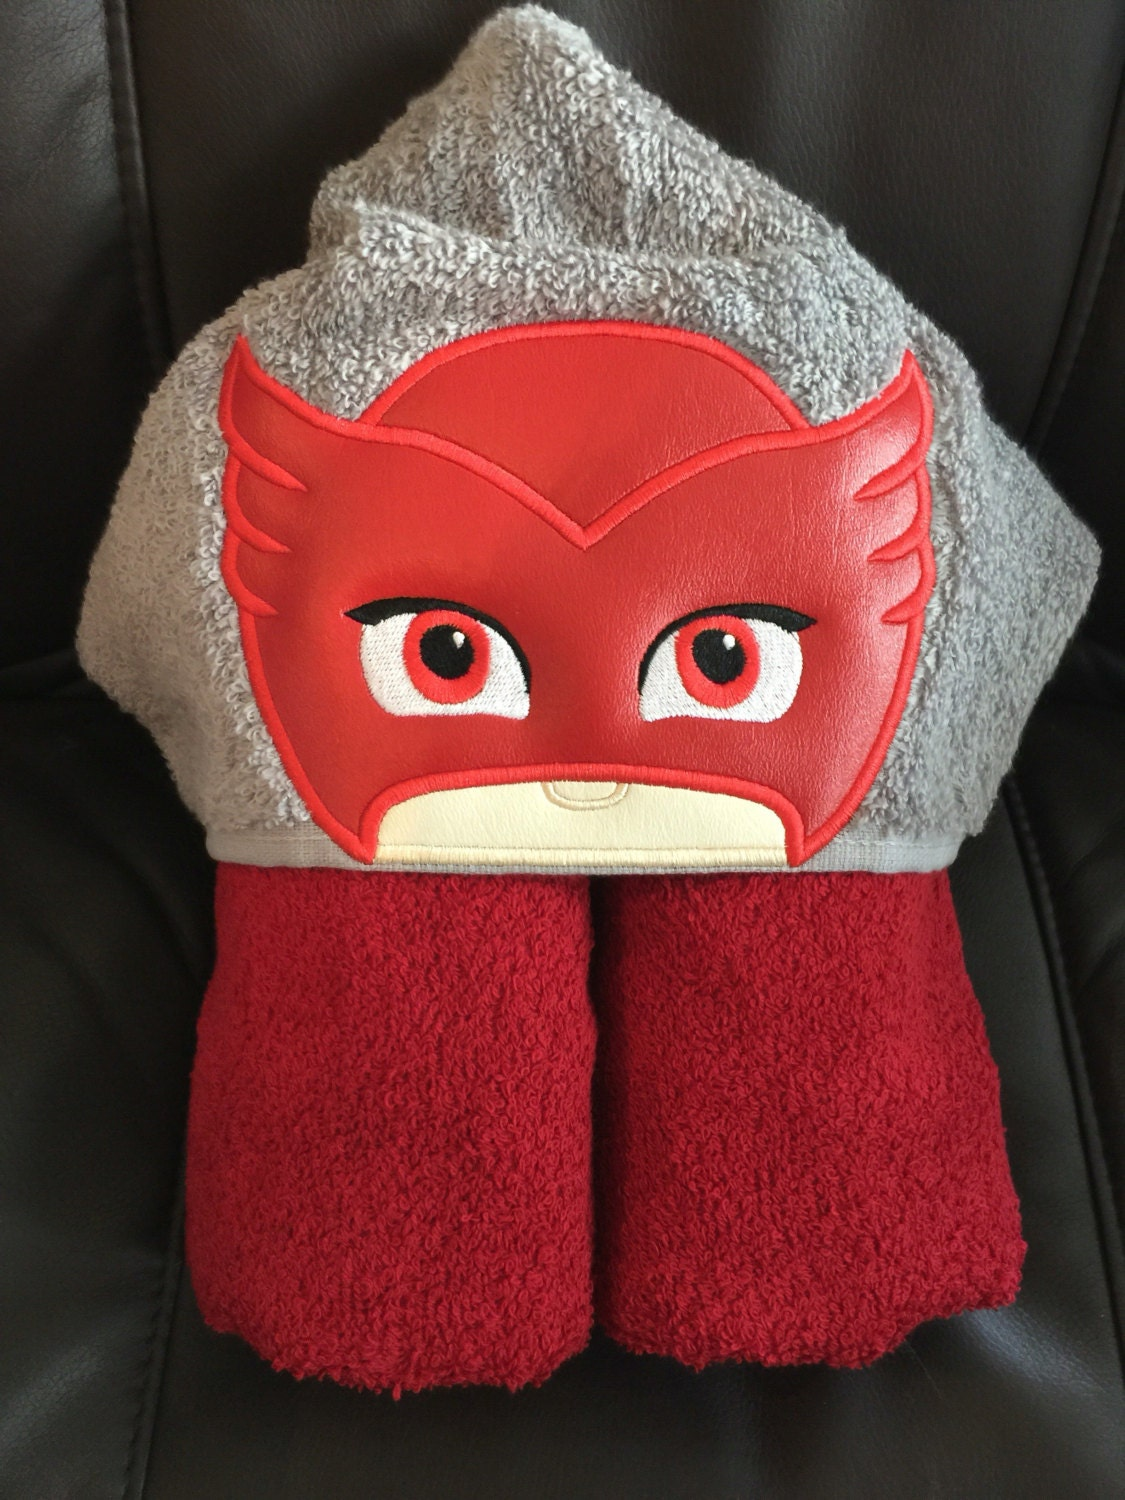 Owlet/Owlette PJ Masks Inspired Embroidered Hooded Towel